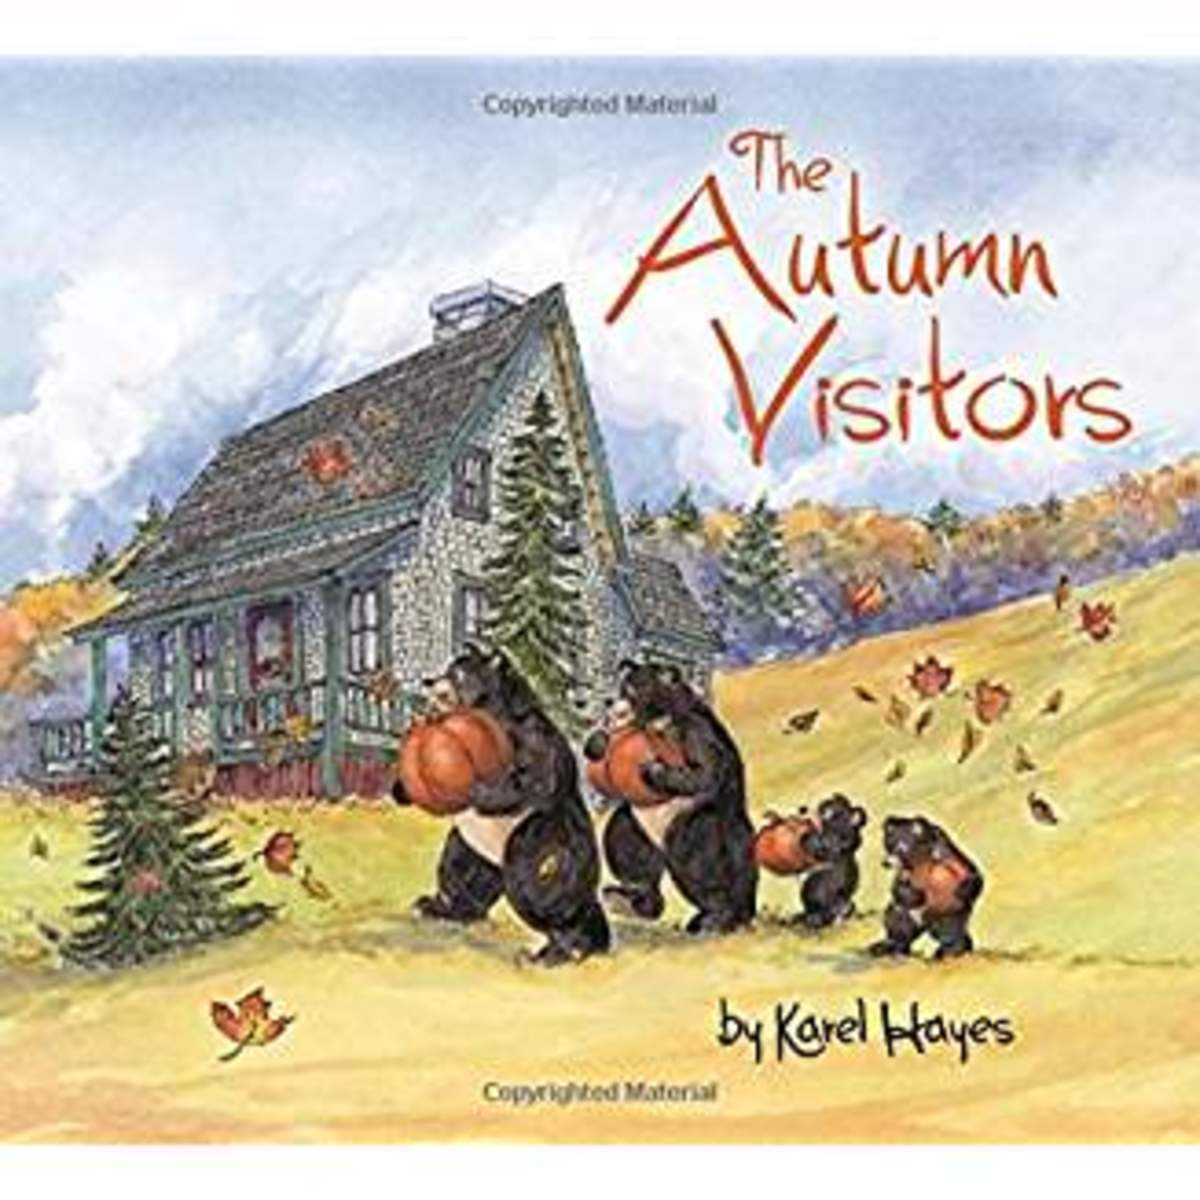 The Autumn Visitors by Karel Hayes